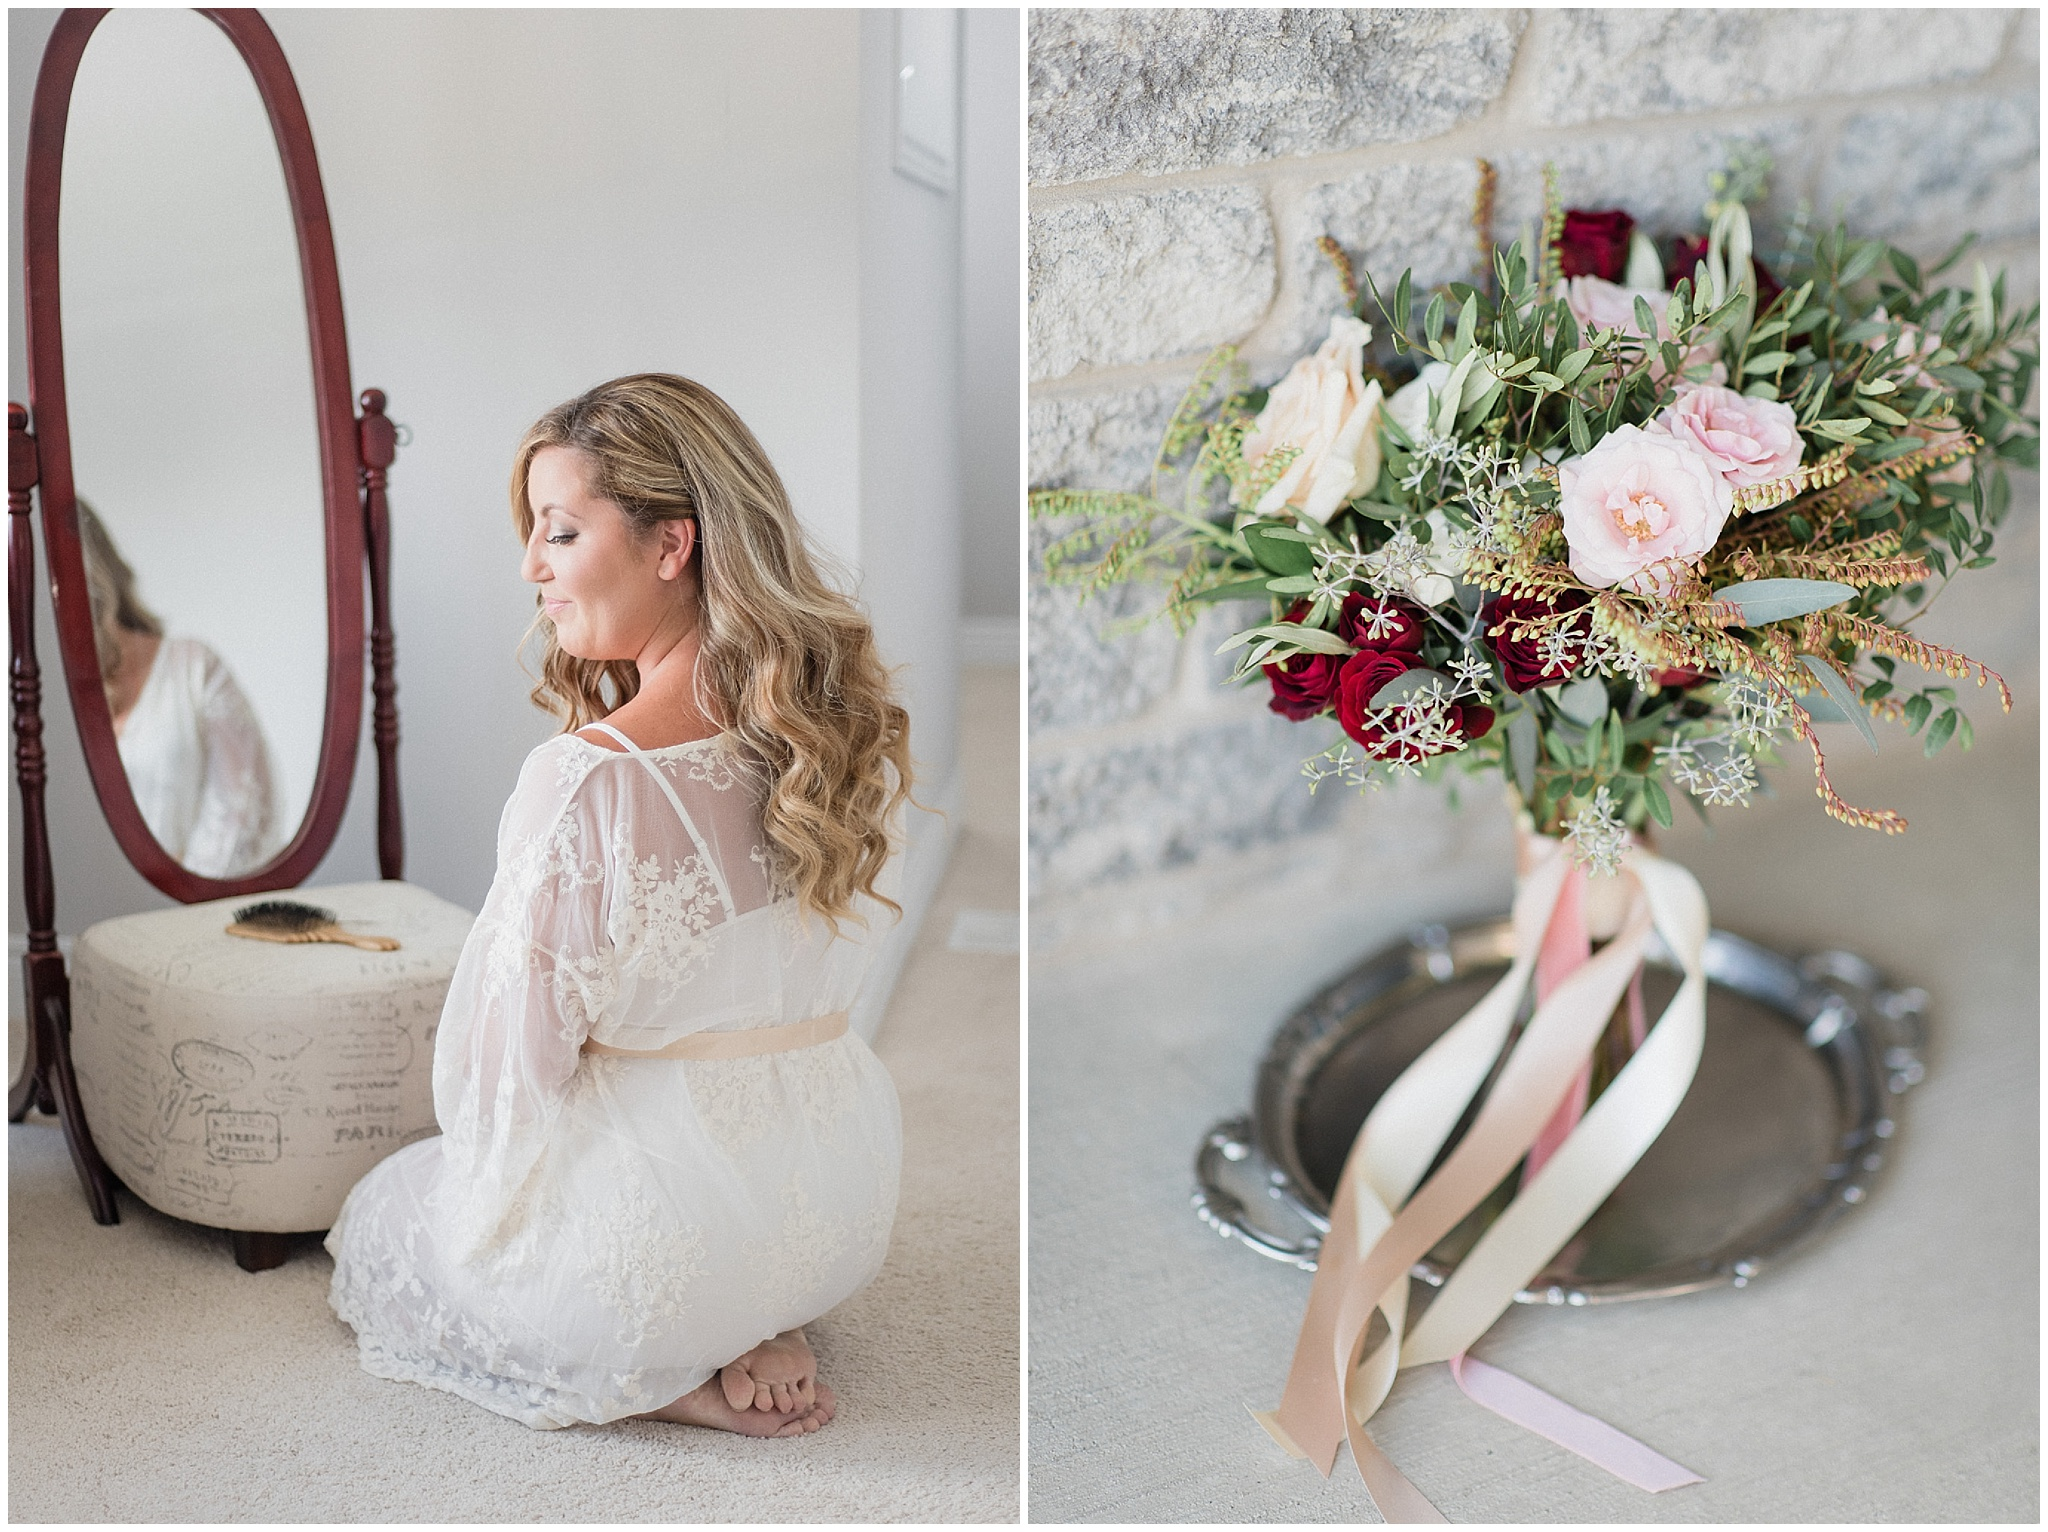 Hand tied florals by Cedar & Stone, photographed by Jenn Kavanagh Photography